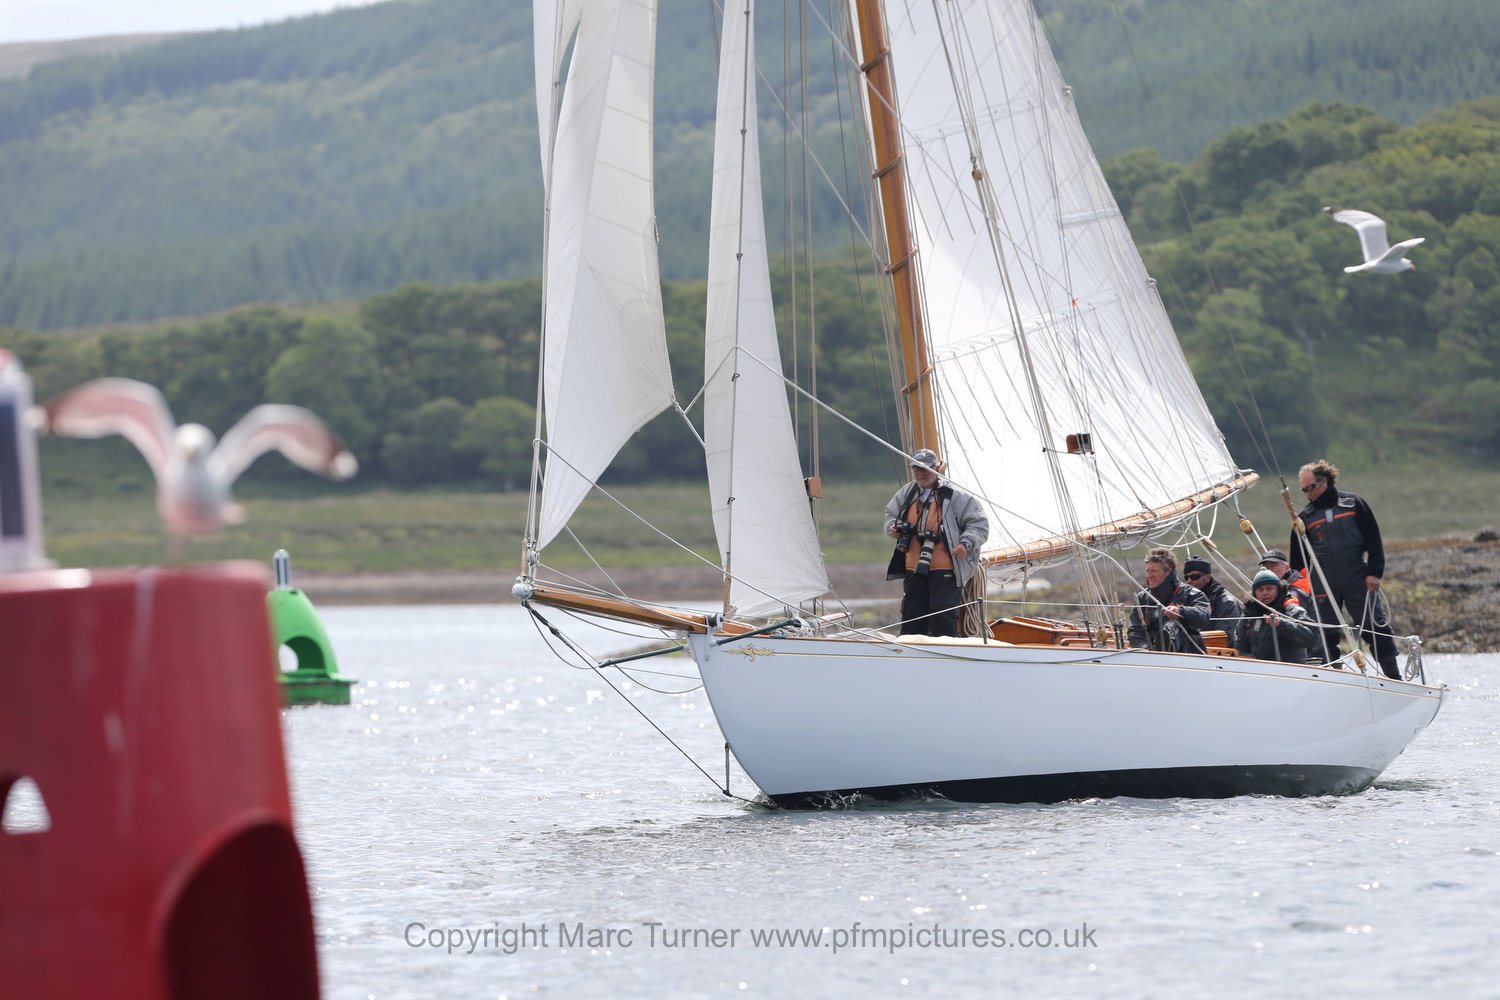 The Fife Regatta 2013- Clyde Classic Sailing